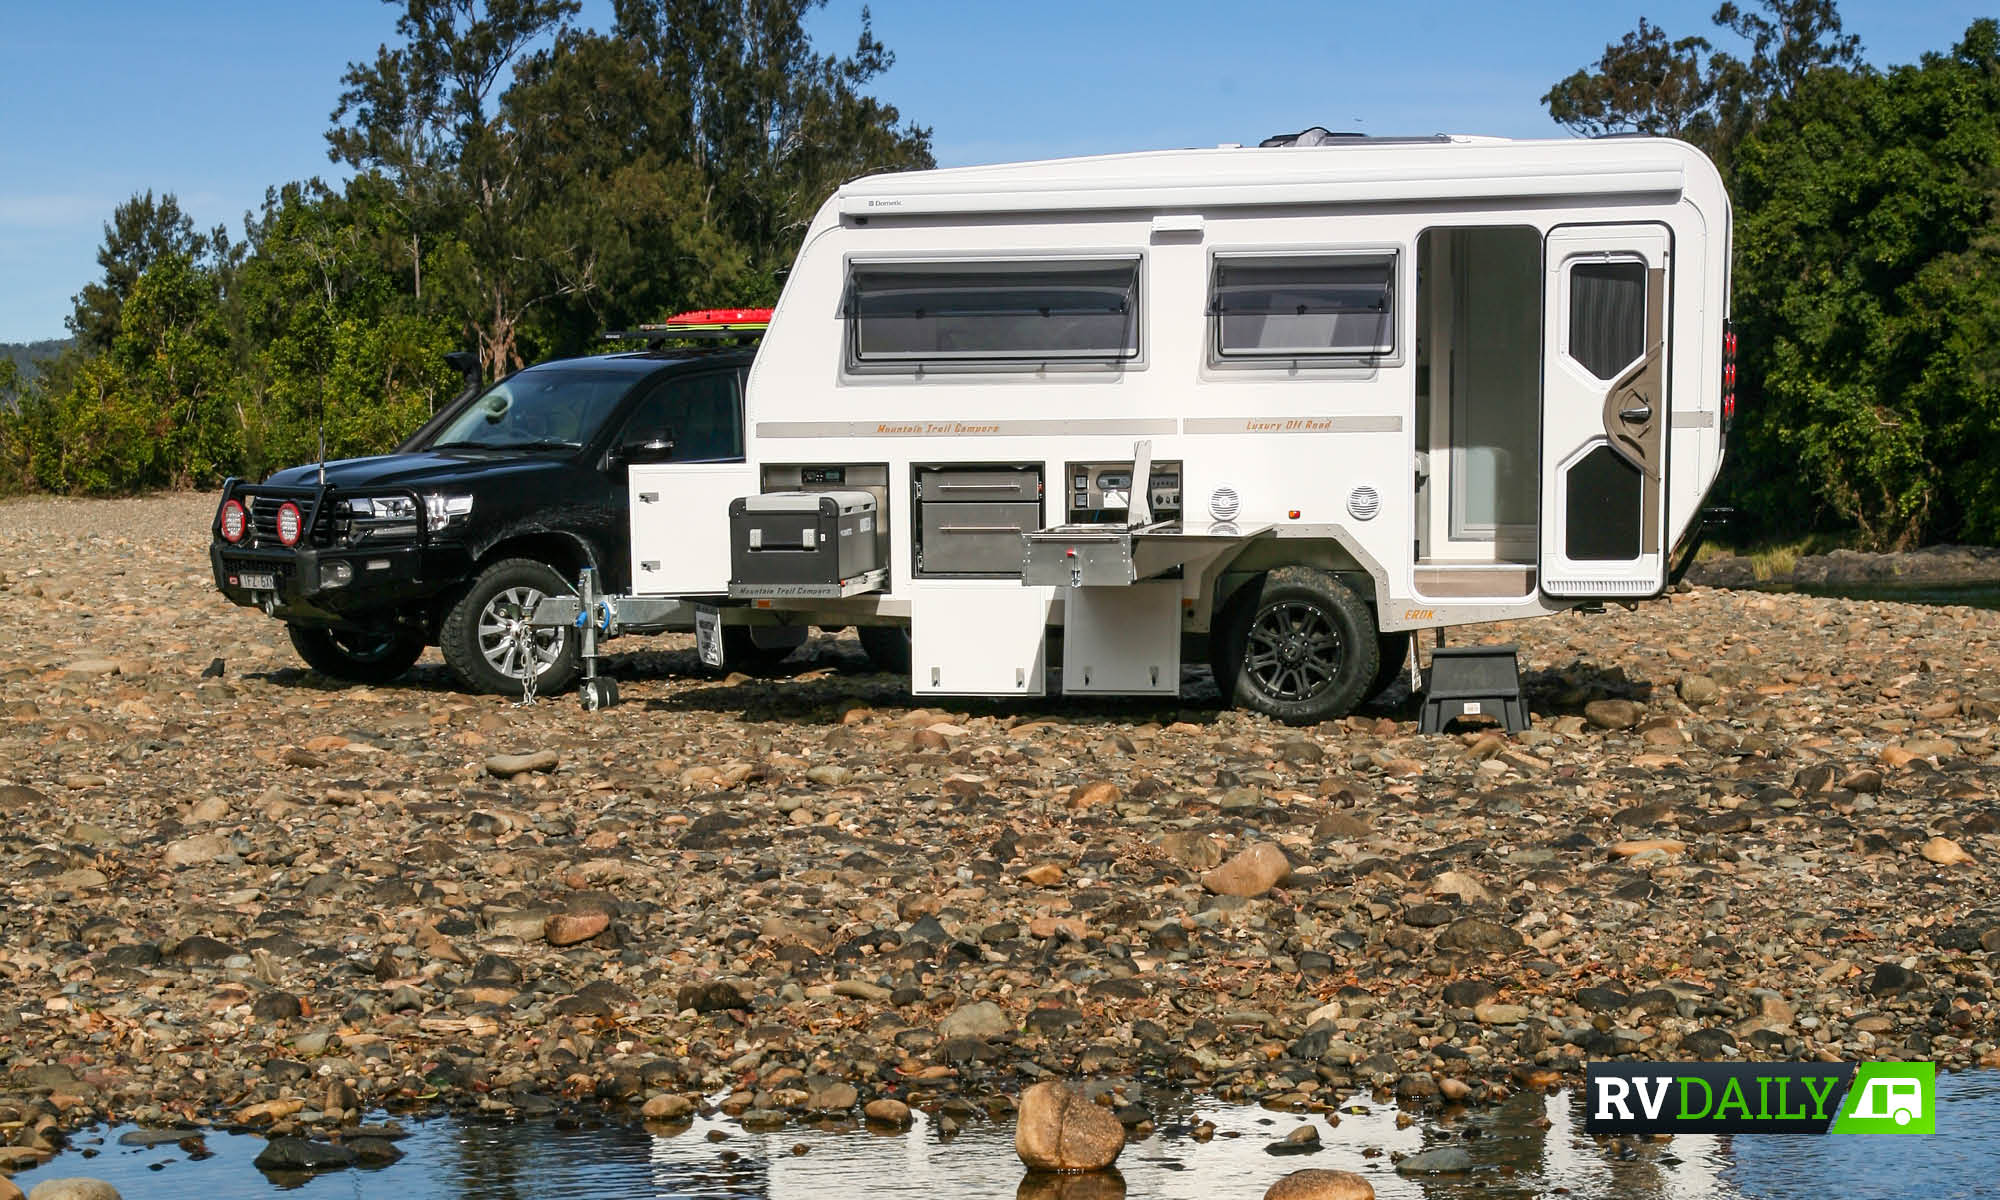 MOUNTAIN TRAIL HAS FUSED CARAVAN, CAMPER & LUXURY APARTMENT INTO ONE HYBRID HERO